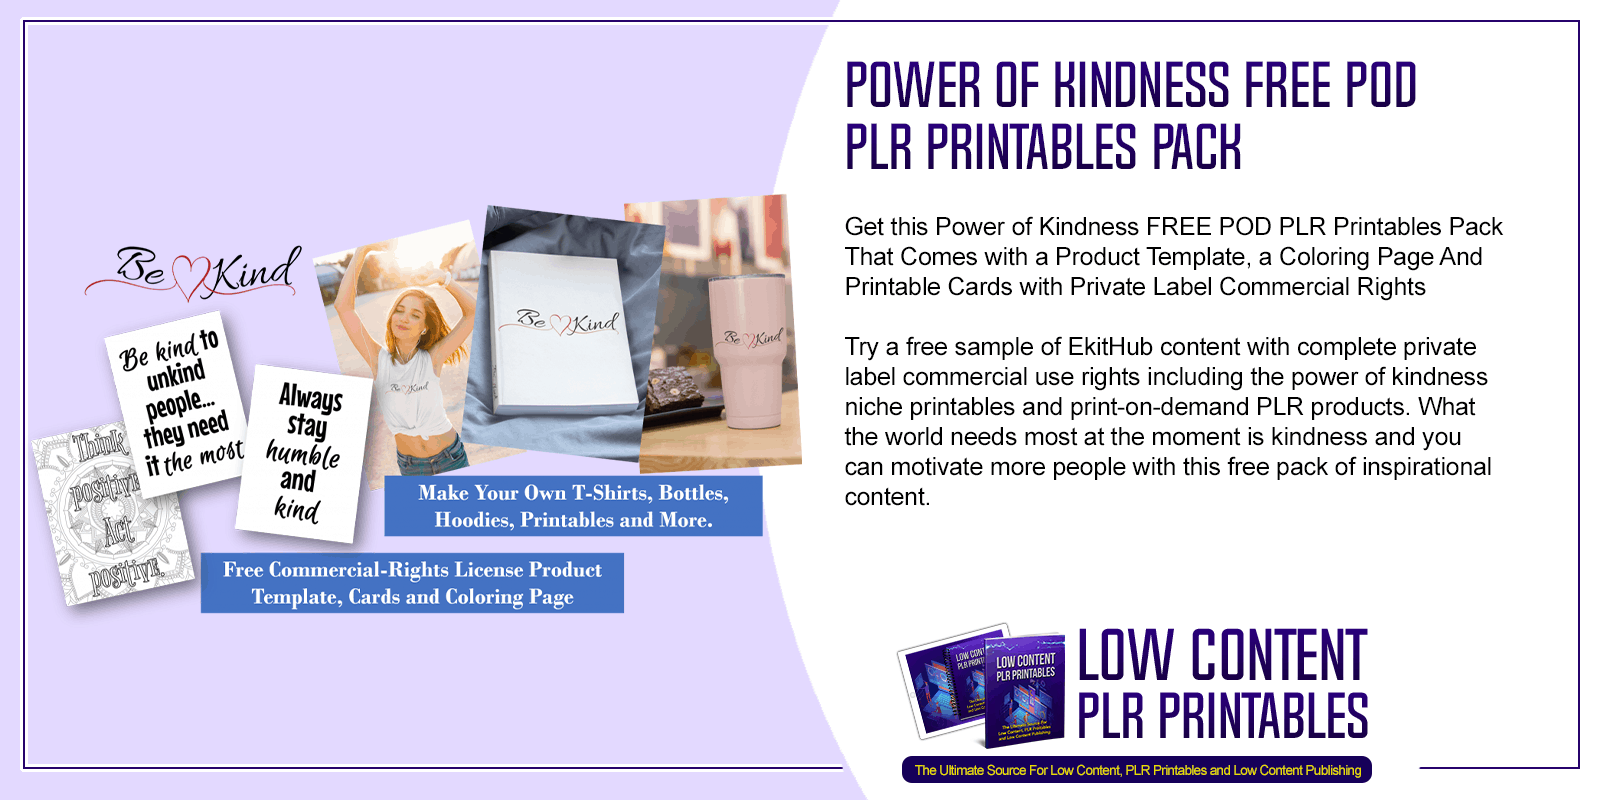 Power of Kindness Free POD PLR Printables Pack